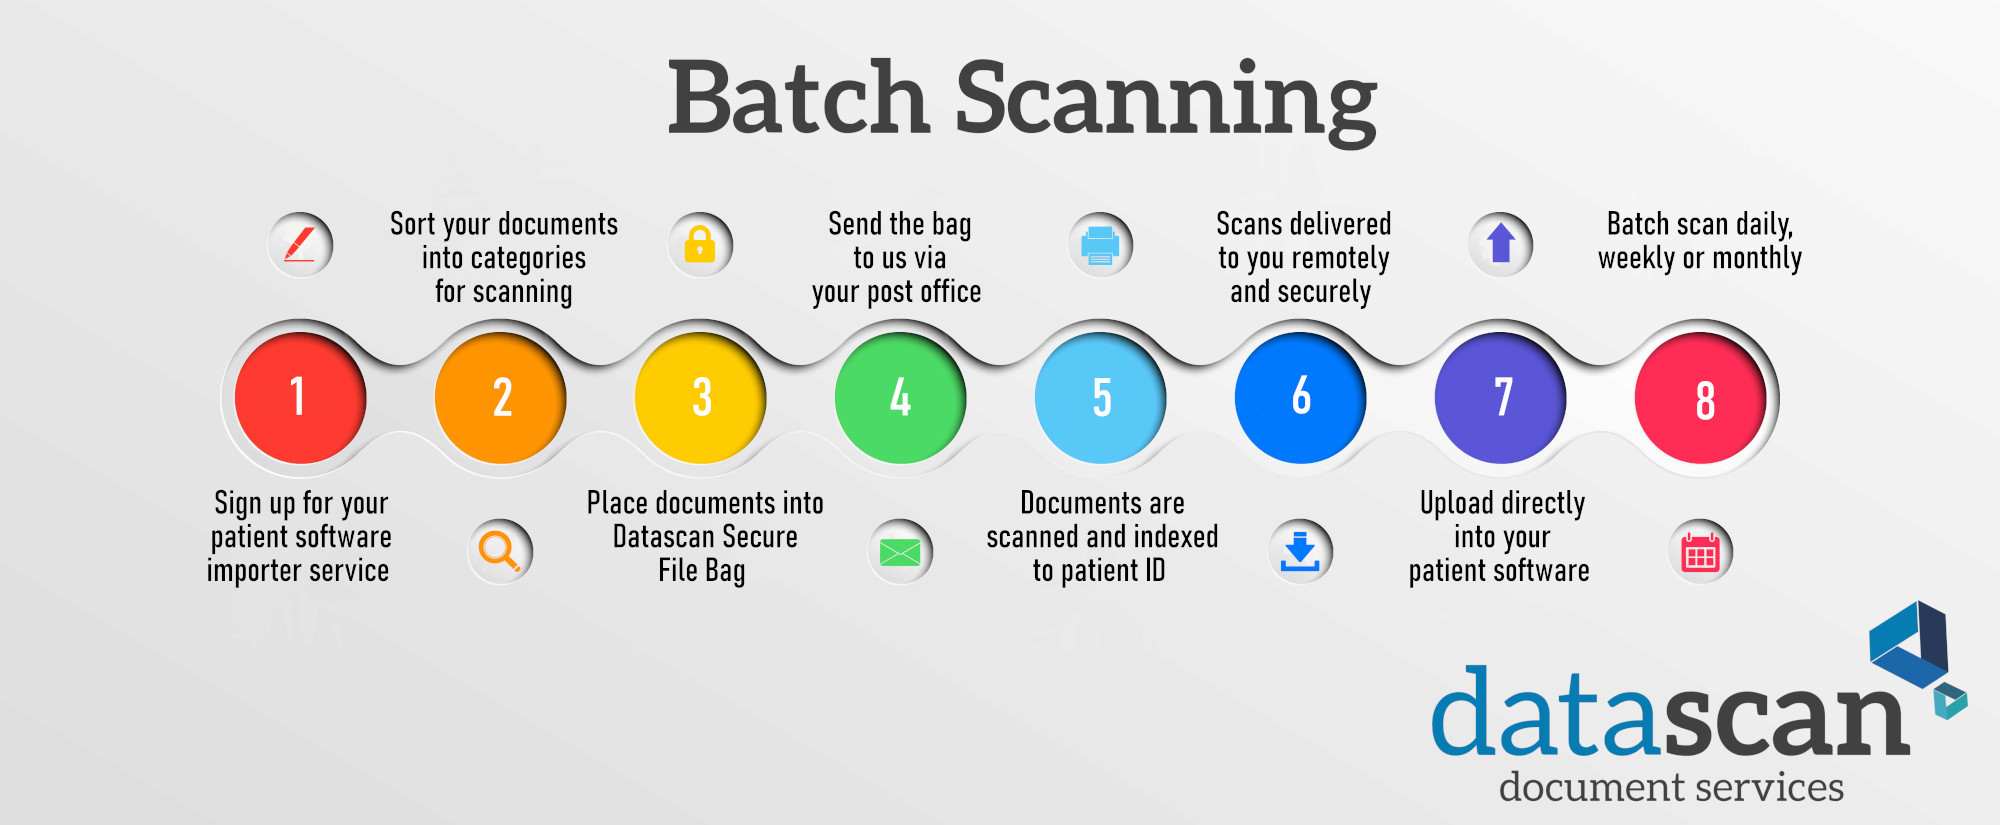 Batch Scanning Steps